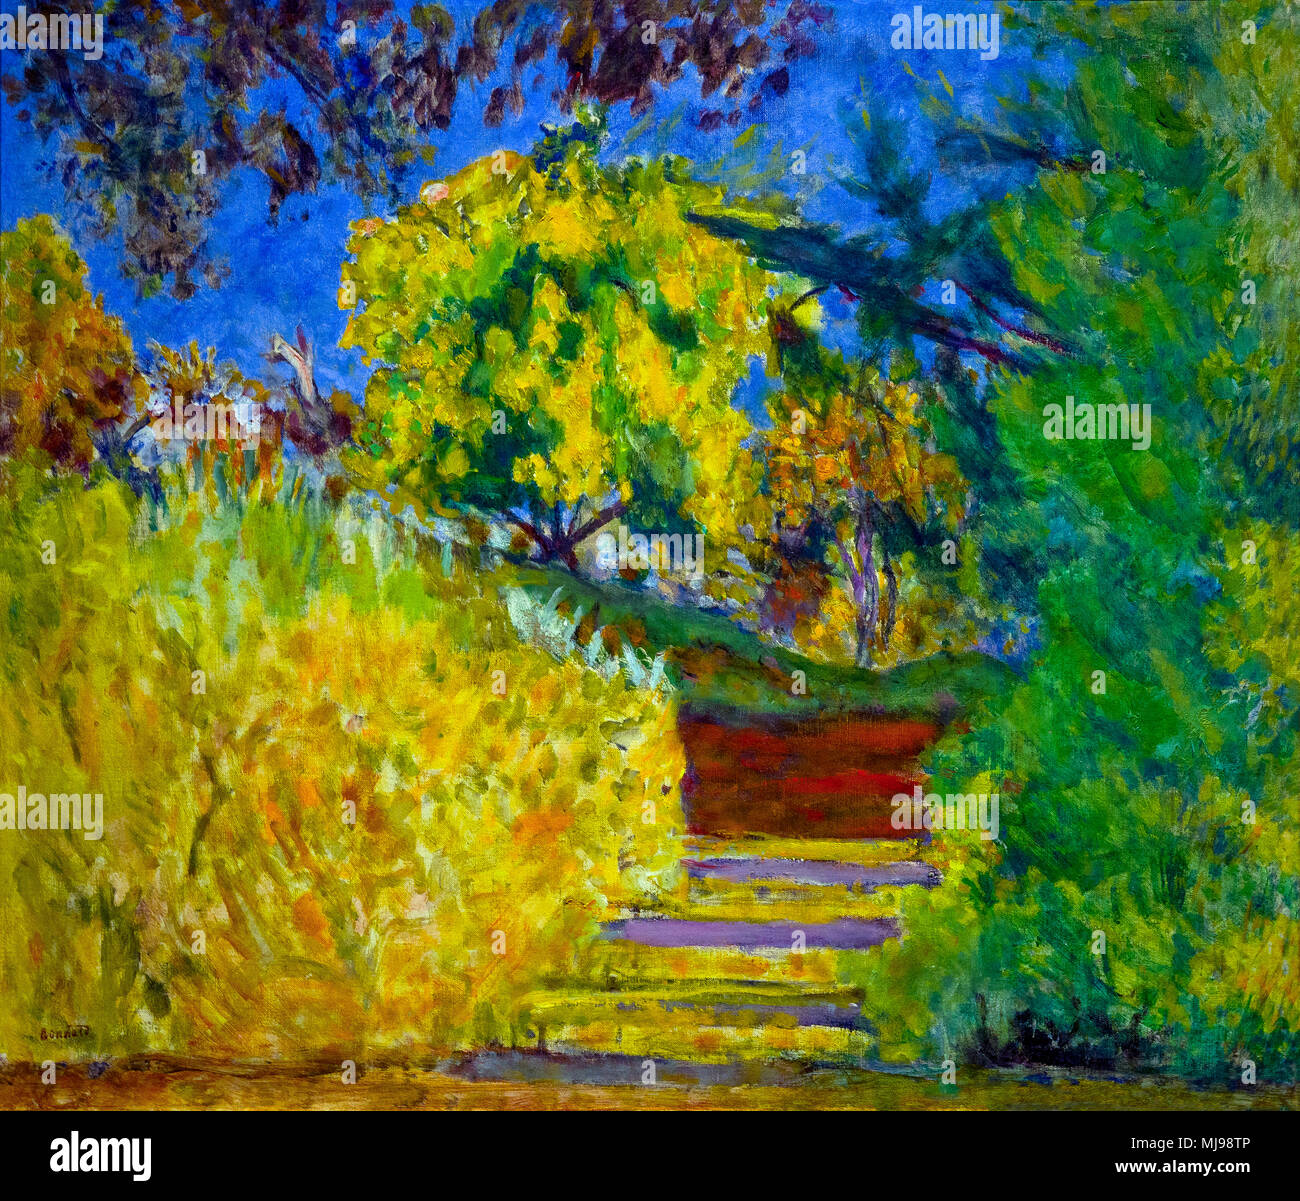 Stairs in the Artist's Garden, 1942-1944, Pierre Bonnard, National Gallery of Art, Washington DC, USA, North America - Stock Image